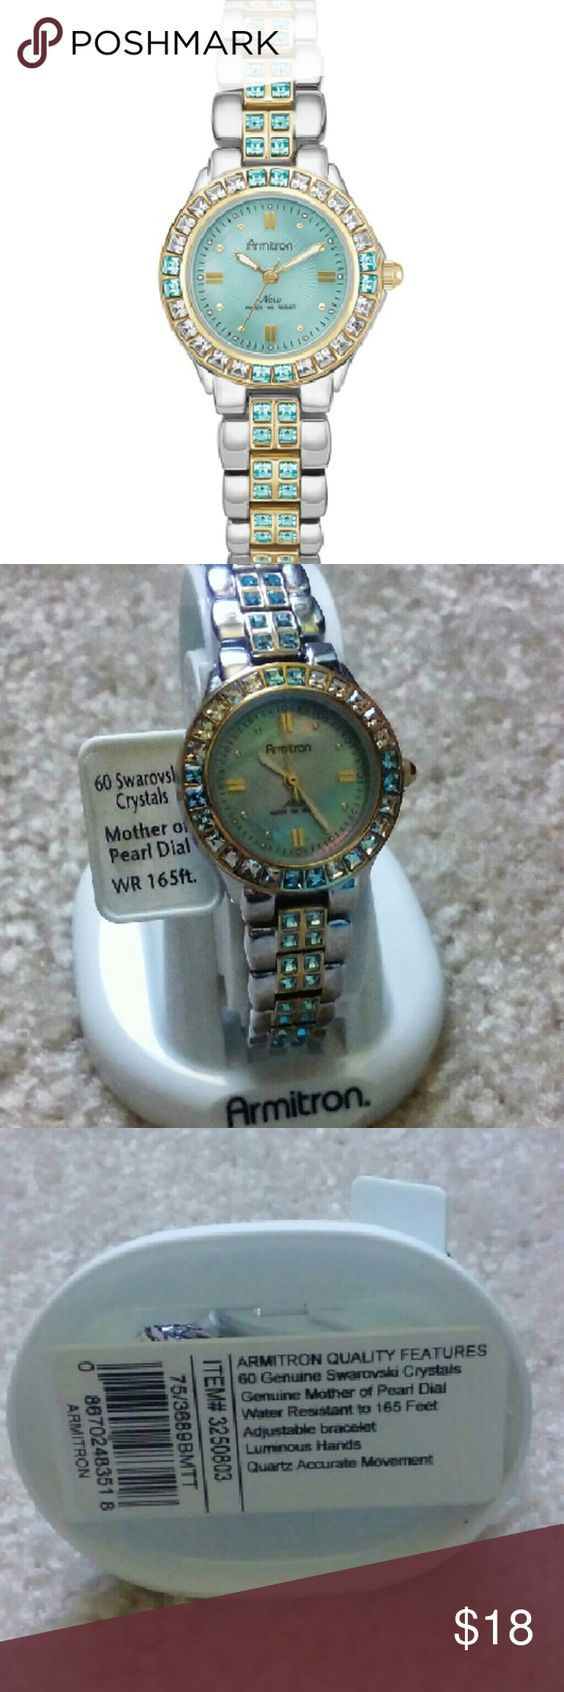 Women's Two-Tone Bracelet Watch - With blue Swarovski crystals - Gold-tone bezel set with 20 clear & 8 light blue crystals - Silver-tone adjustable bracelet with 32 light blue crystals down the central canal - Water-resistant to 165 feet - Genuine mother-of-pearl dial - Requires a battery Armitron Accessories Watches